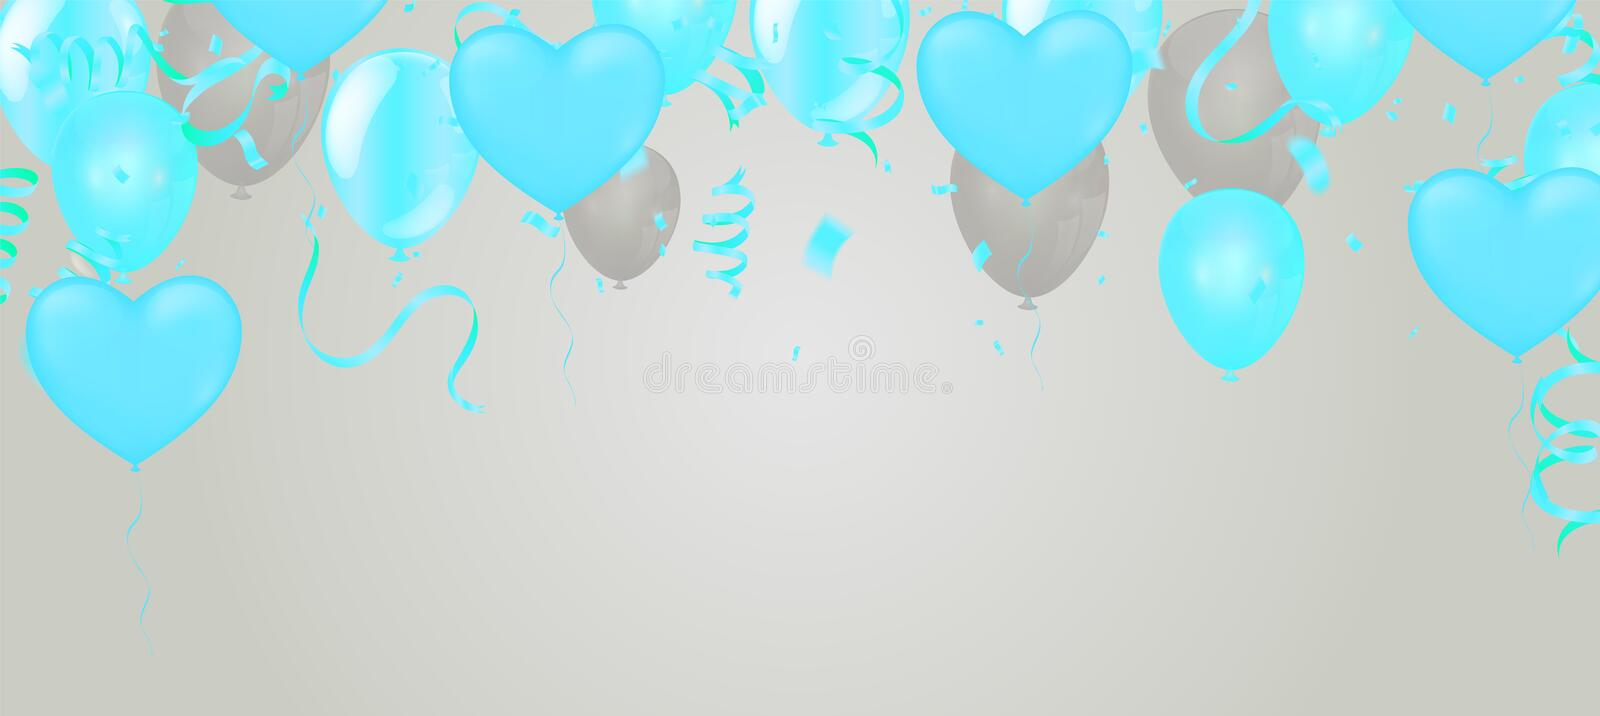 Blue balloons with Many colored balloons for designers and illustrators. Balls backdrop , festival, wedding vector illustration